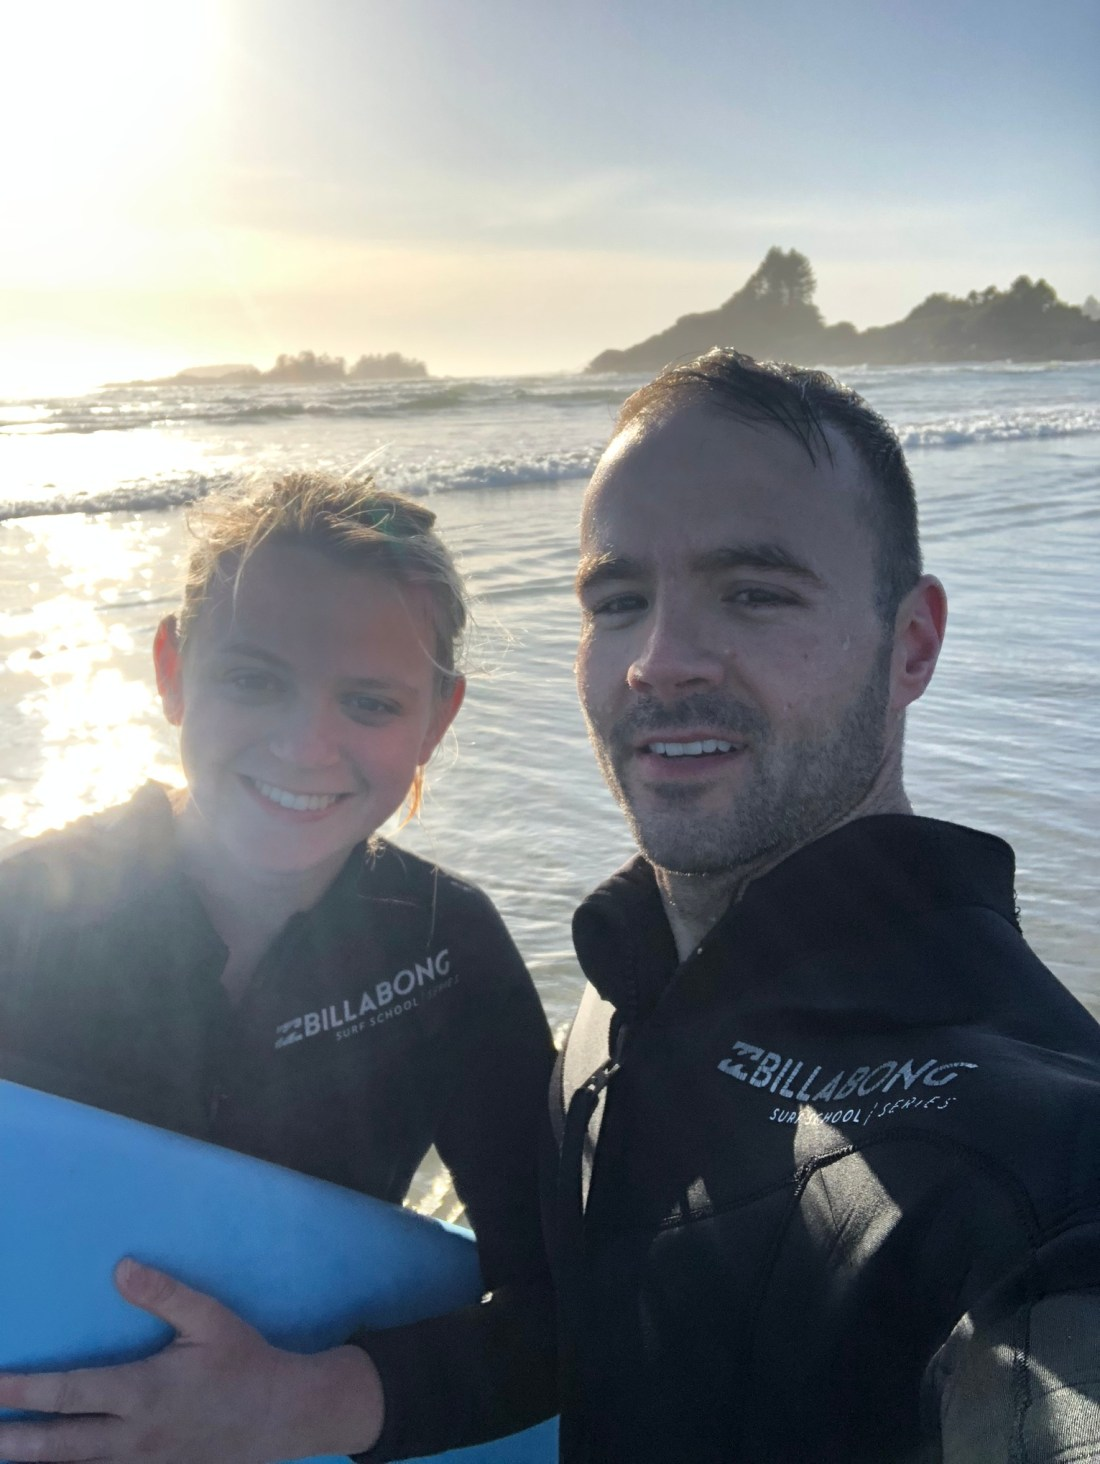 Surfing in Tofino, Vancouver Island